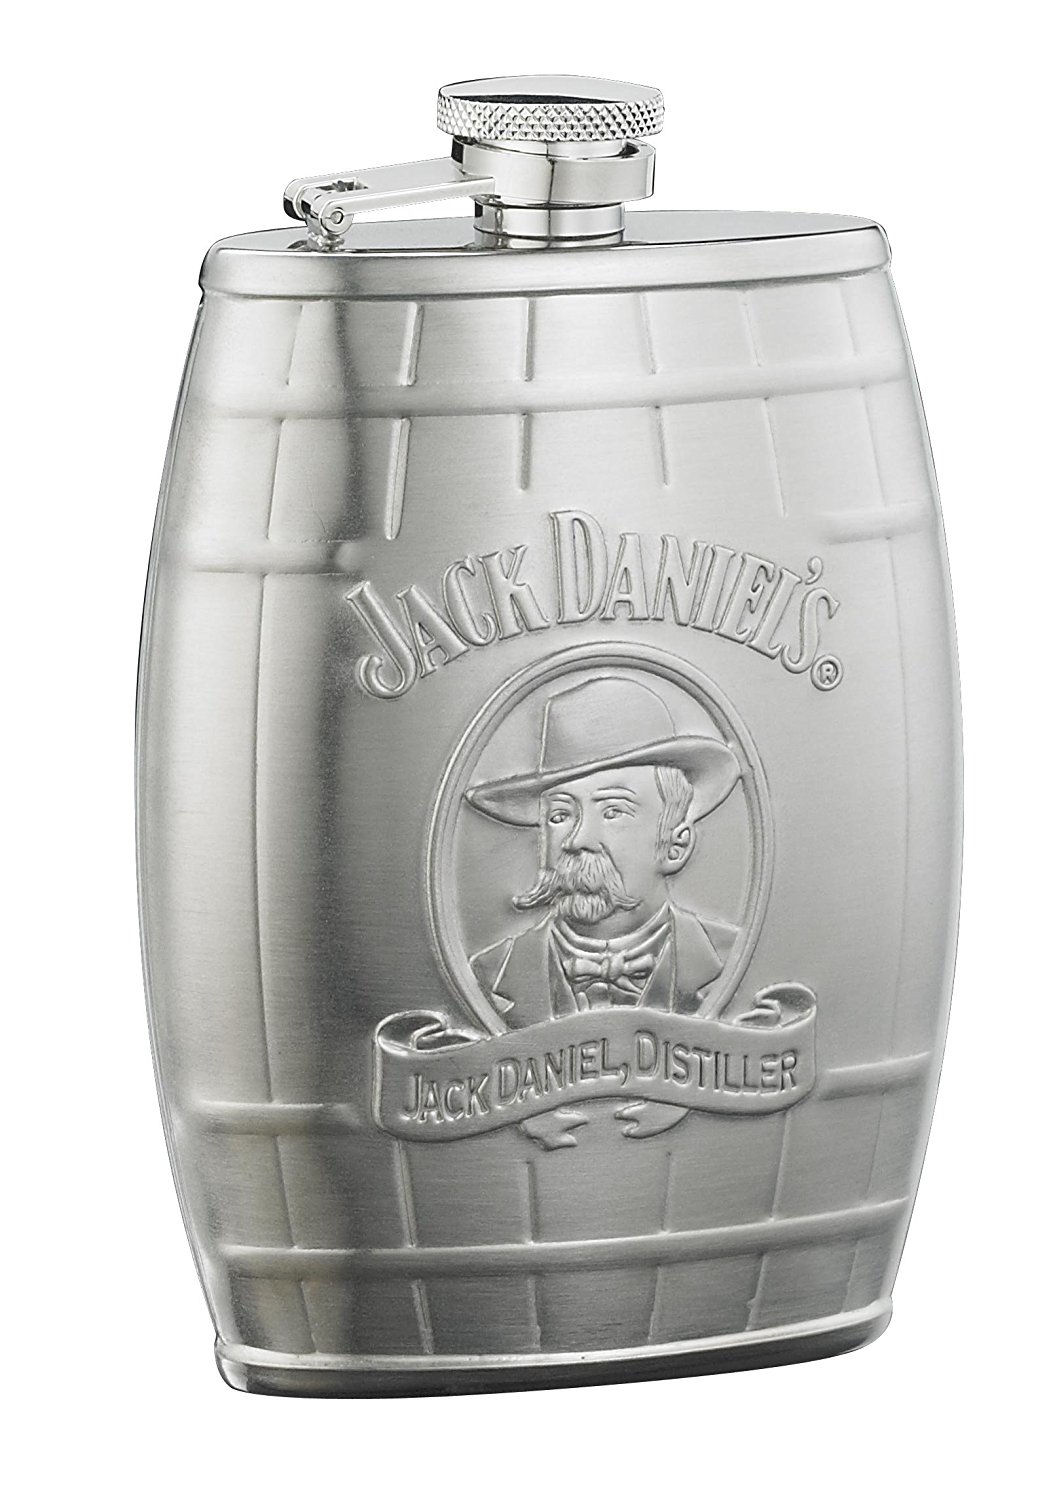 Jack Daniels Cameo 6 Oz. Barrel Flask